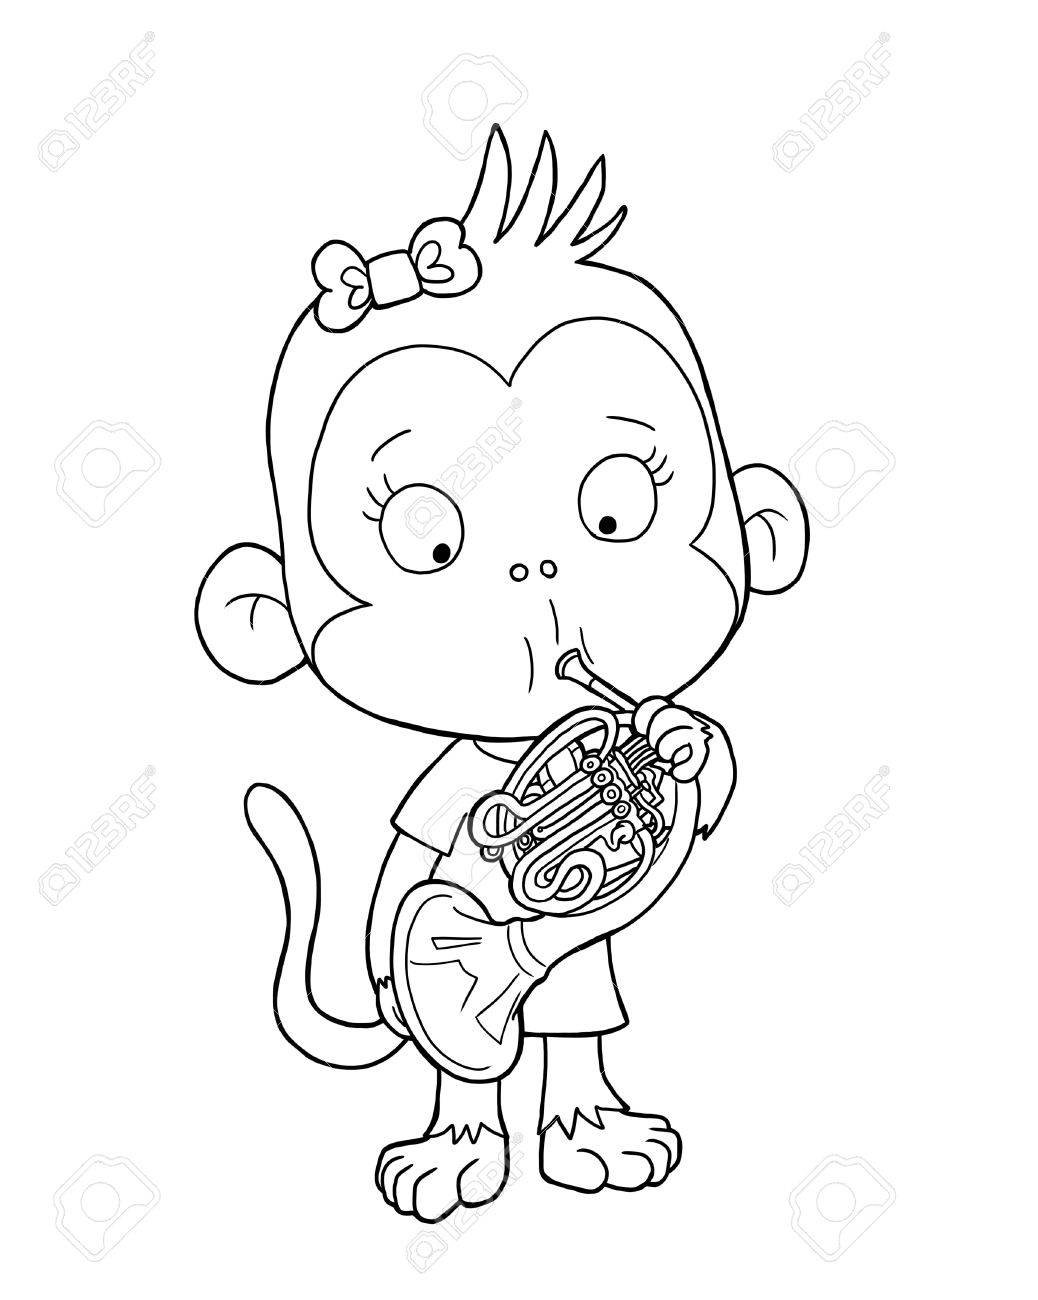 cute monkey playing french horn coloring page stock photo